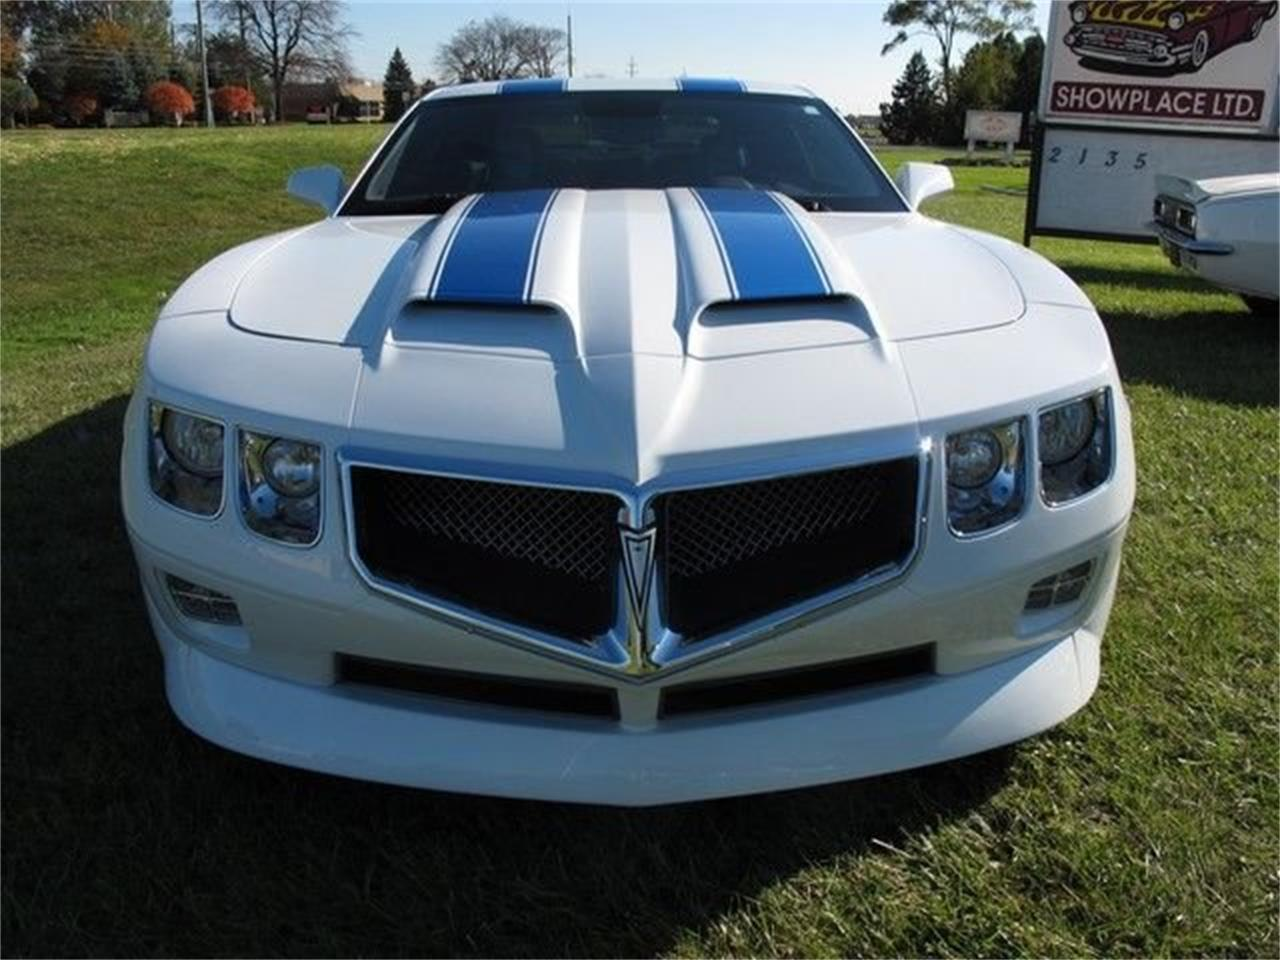 2010 Chevrolet Camaro (CC-1043335) for sale in Troy, Michigan